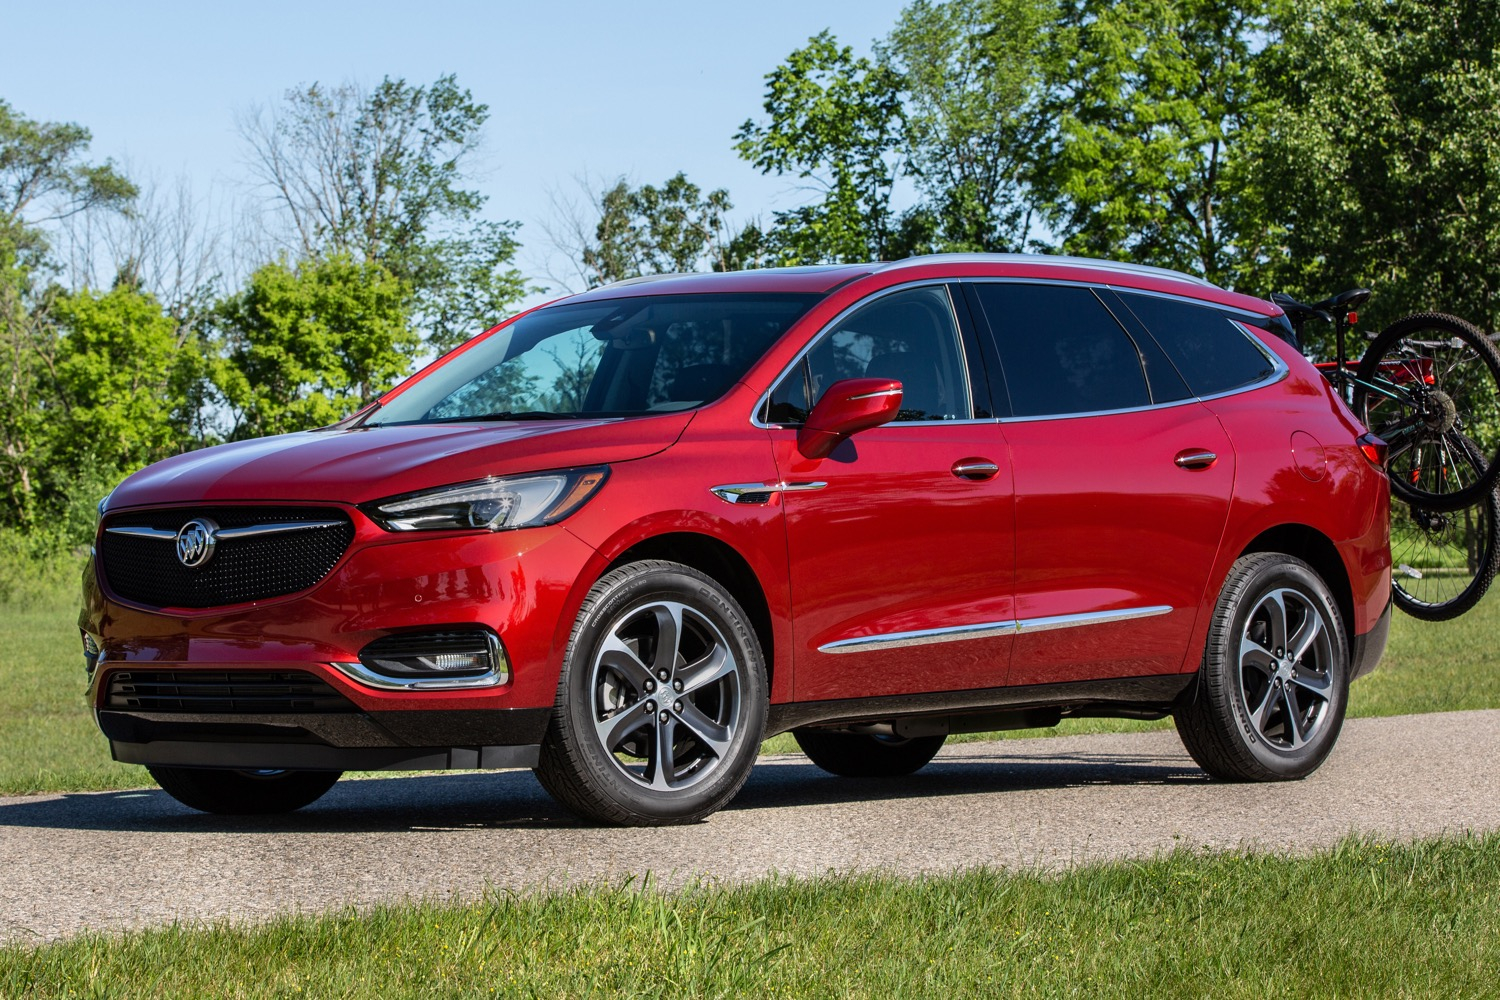 Buick Enclave Discount Cuts Price $5,600 March 2020 | Gm 2021 Buick Enclave Awd, Build, Lease